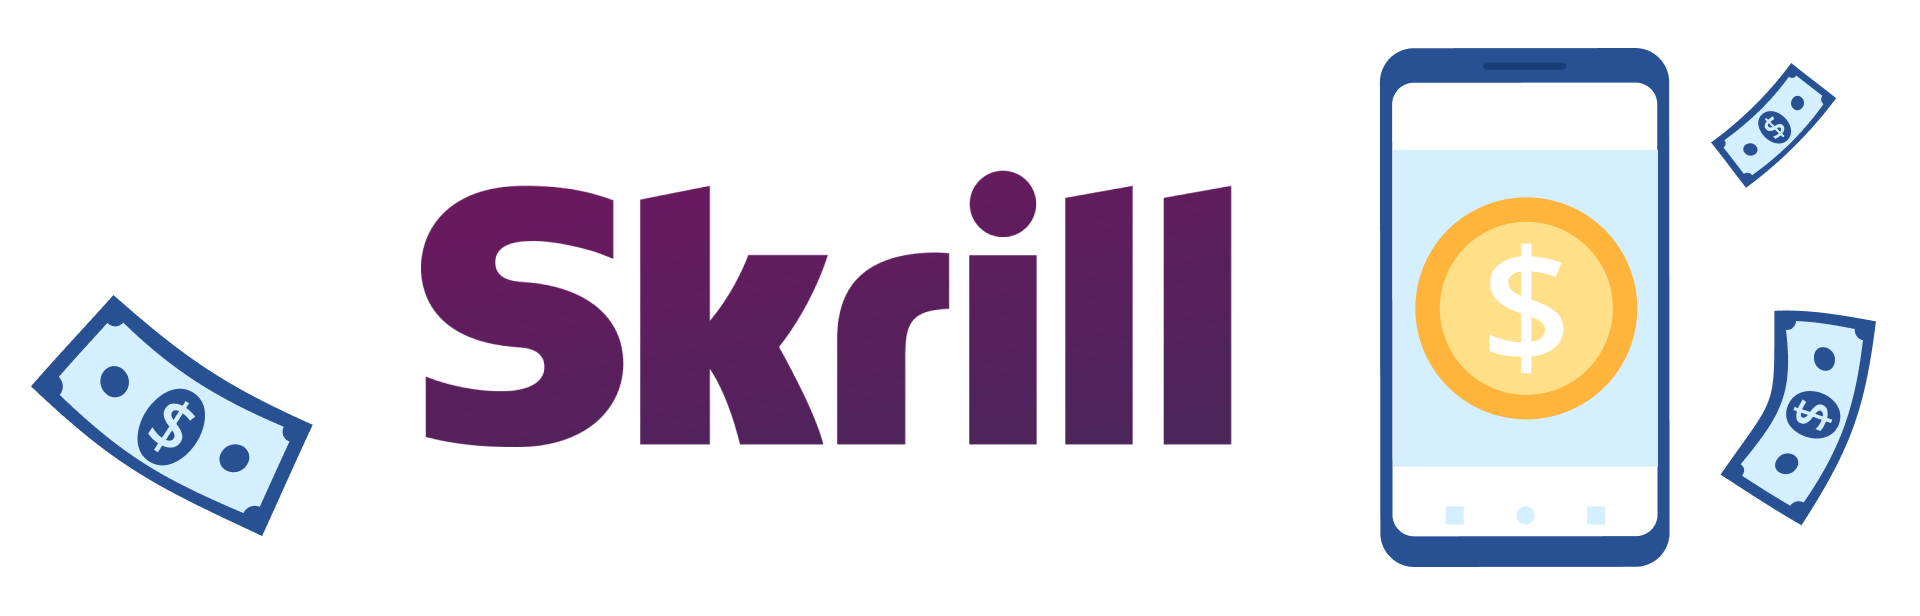 Skrill is advantageous for performing cryptocurrency transactions.